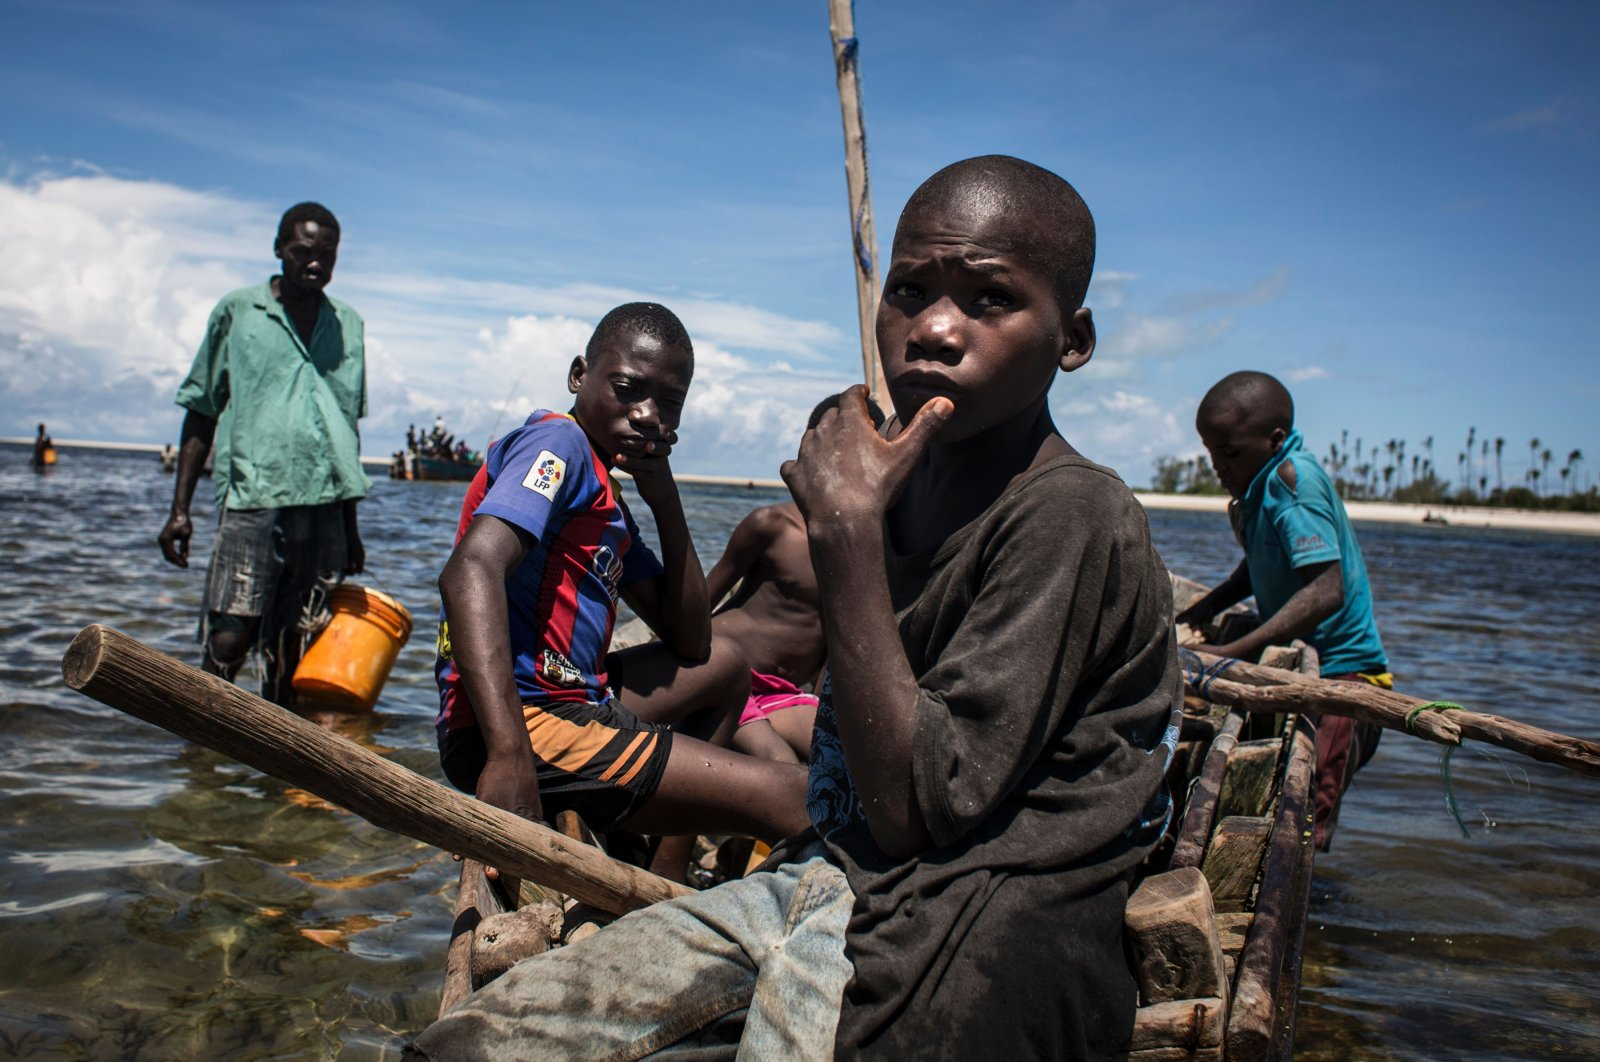 Young Mozambican fishermen return to the shore after several days of fishing near where large deposits of natural gas were found, in Palma, Mozambique, Feb. 16, 2017. (AFP Photo)